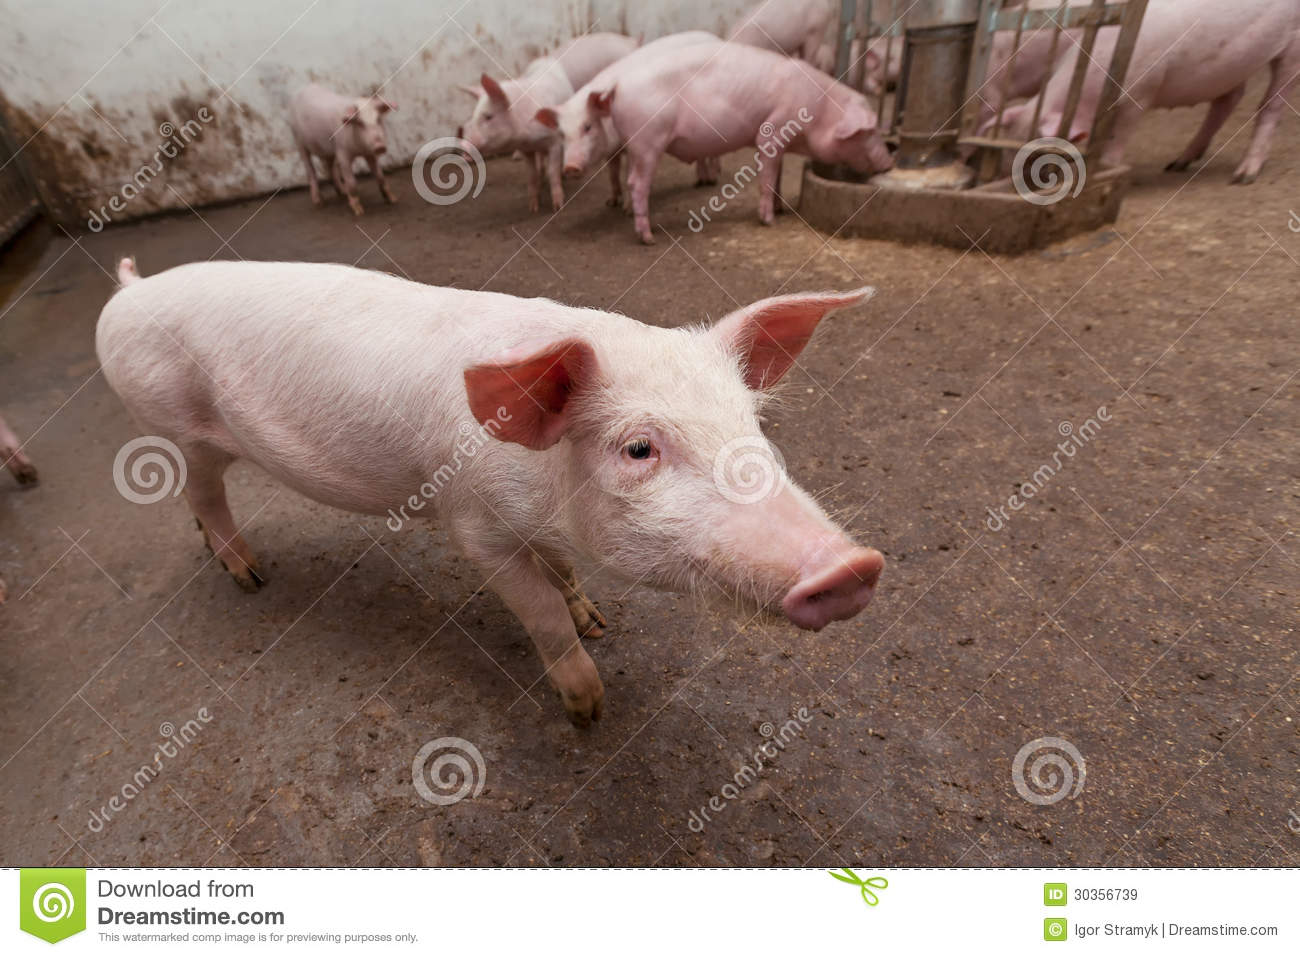 Pig Farm Royalty Free Stock Images - Image: 30356739